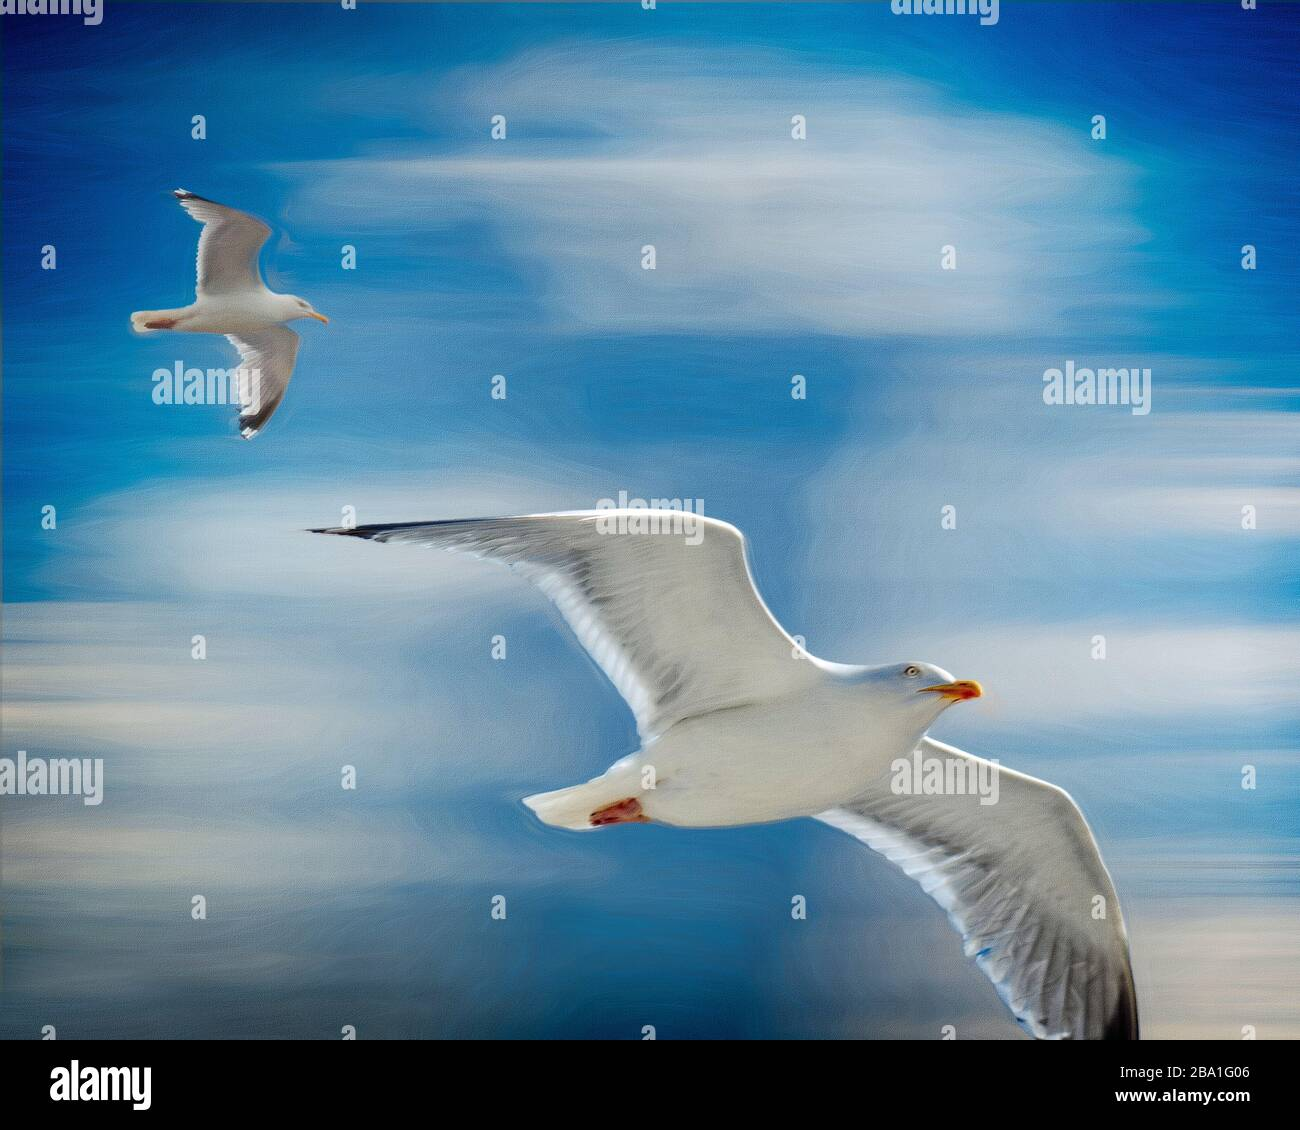 Flight Of Fancy High Resolution Stock Photography And Images Alamy